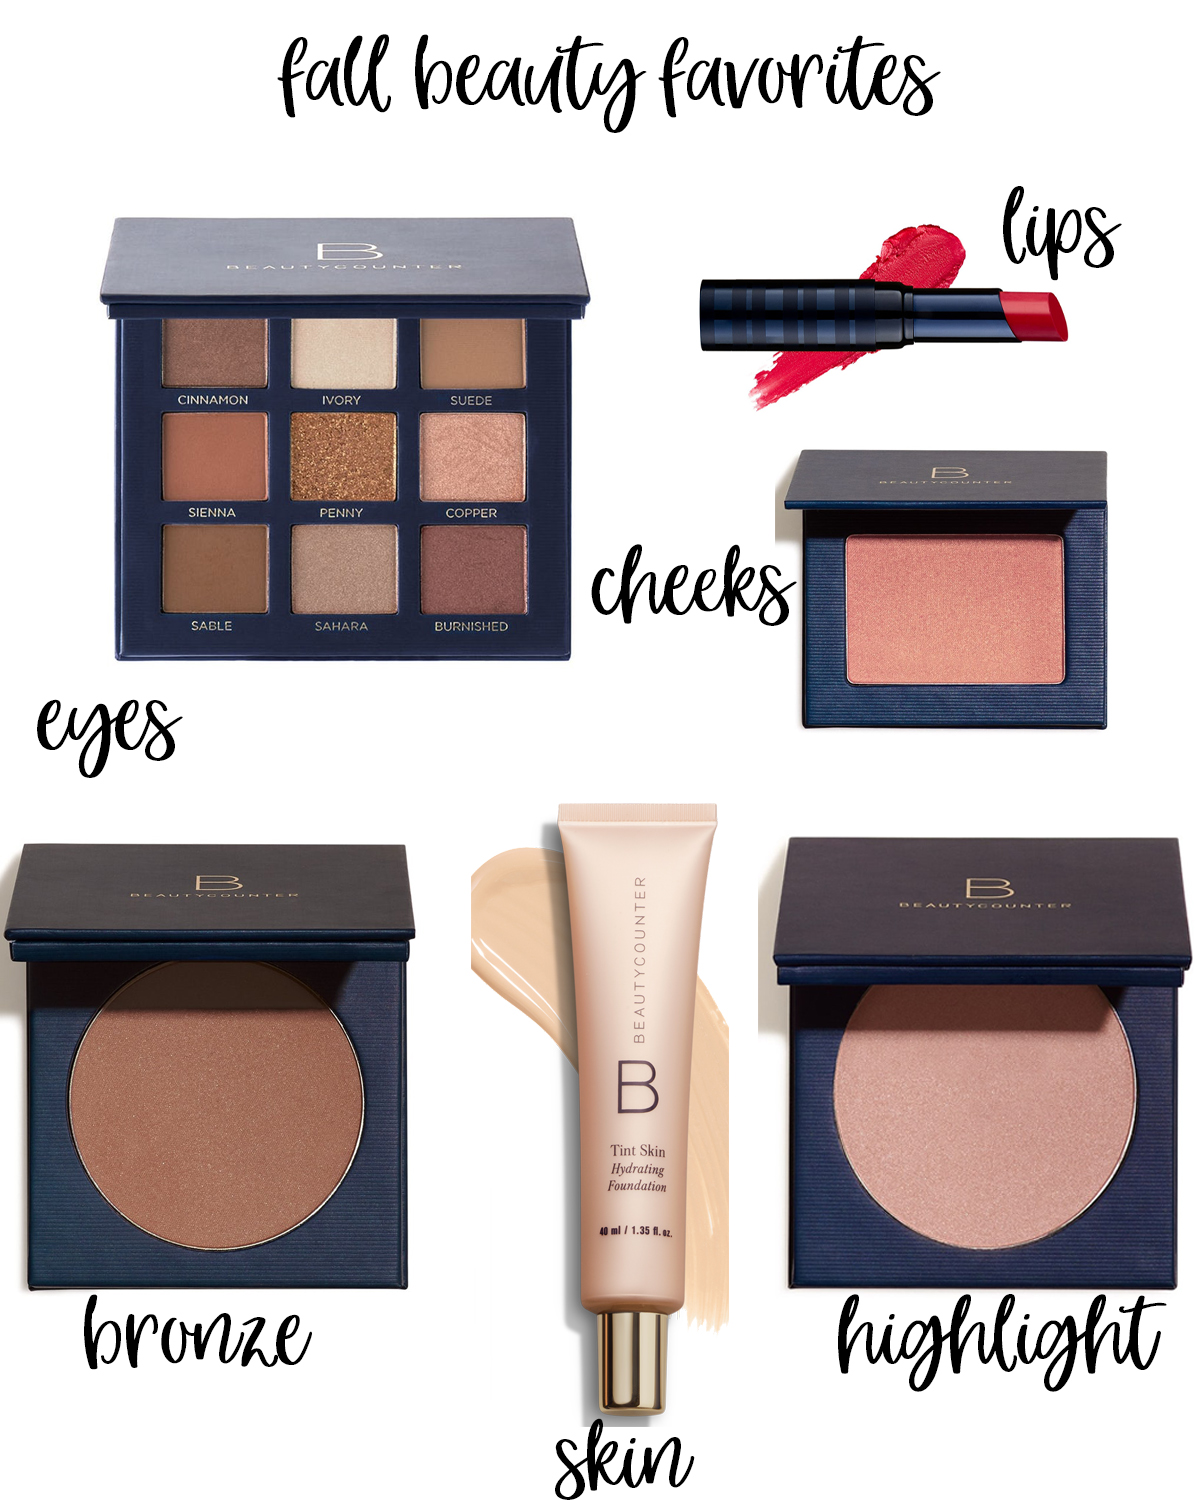 Friday Favorites featured by popular Houston life and style blogger, Fancy Ashley: Fall beauty products